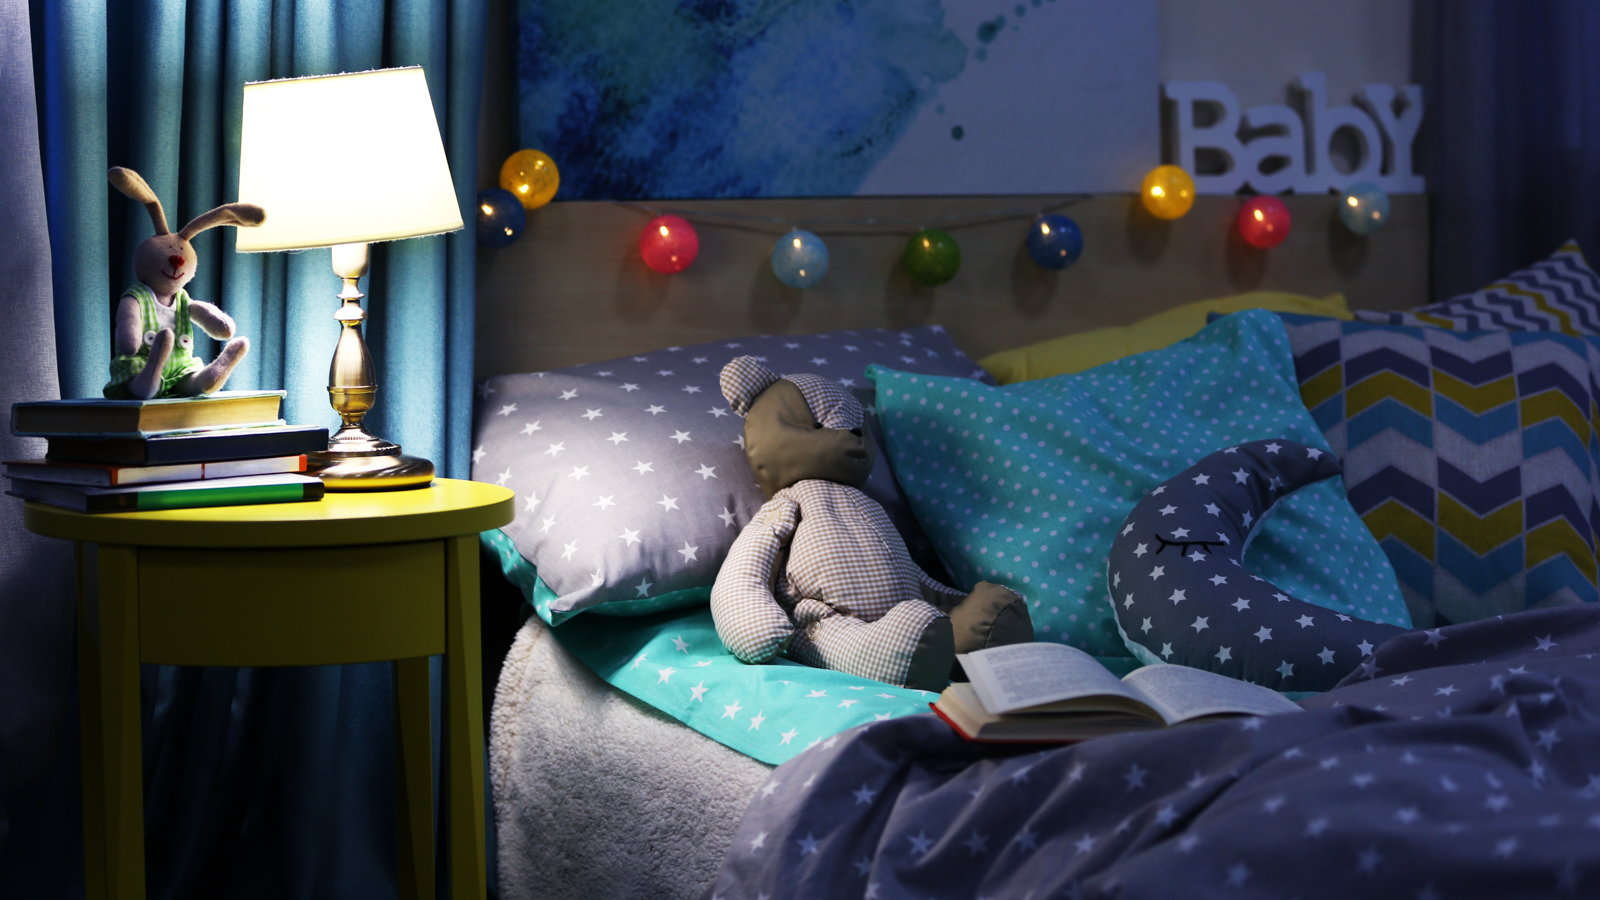 child's bedroom at night